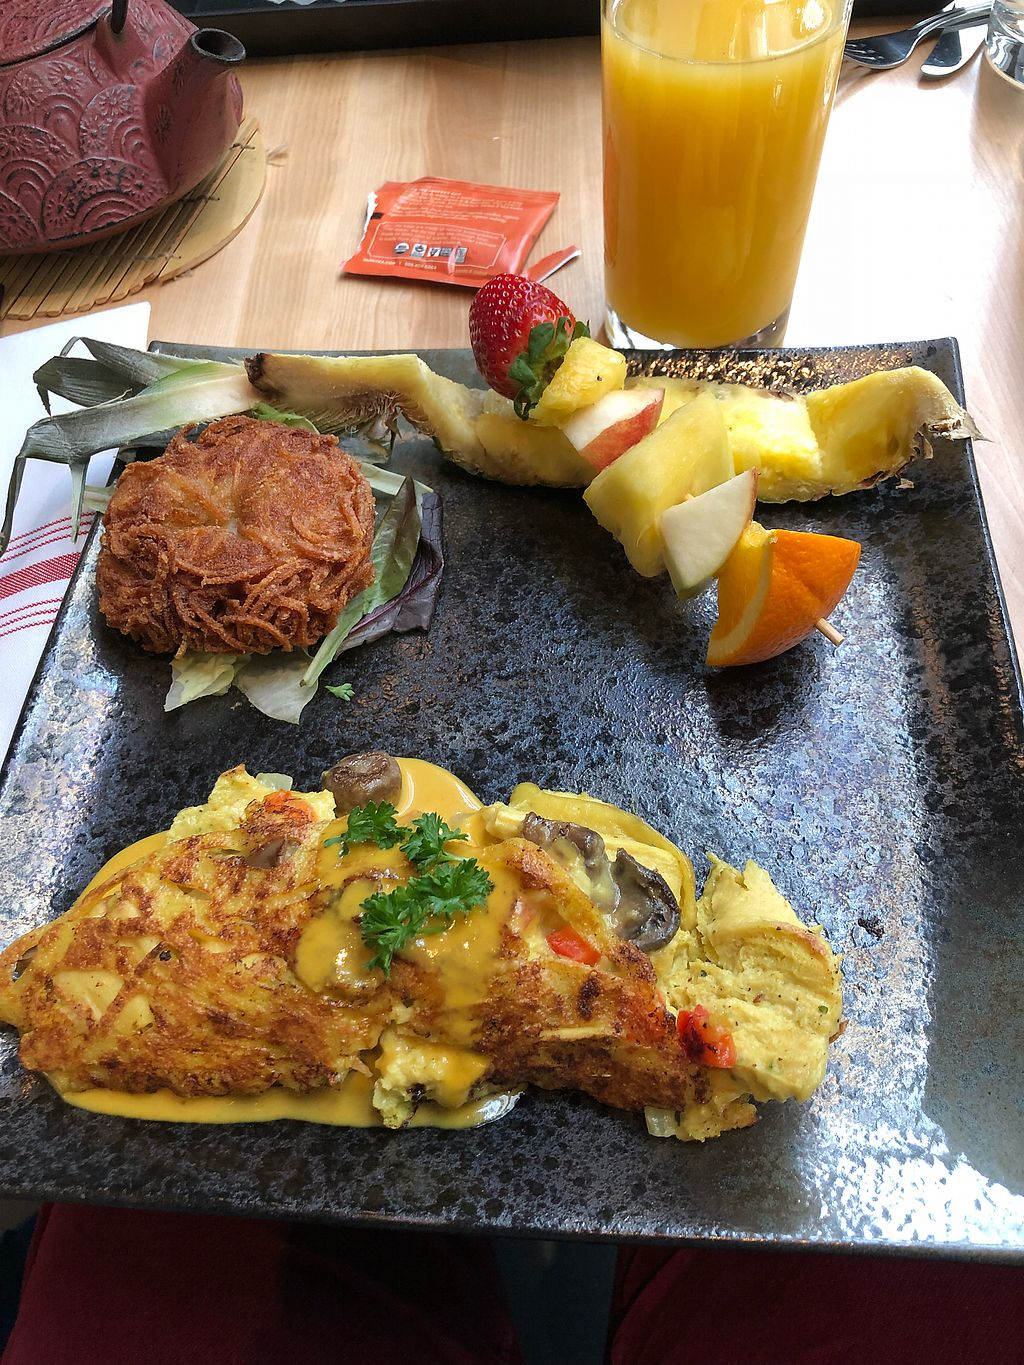 """Photo of Invitation V Vegan Bistro  by <a href=""""/members/profile/KaitlynnGill"""">KaitlynnGill</a> <br/>Omelette  <br/> February 27, 2018  - <a href='/contact/abuse/image/38634/364651'>Report</a>"""